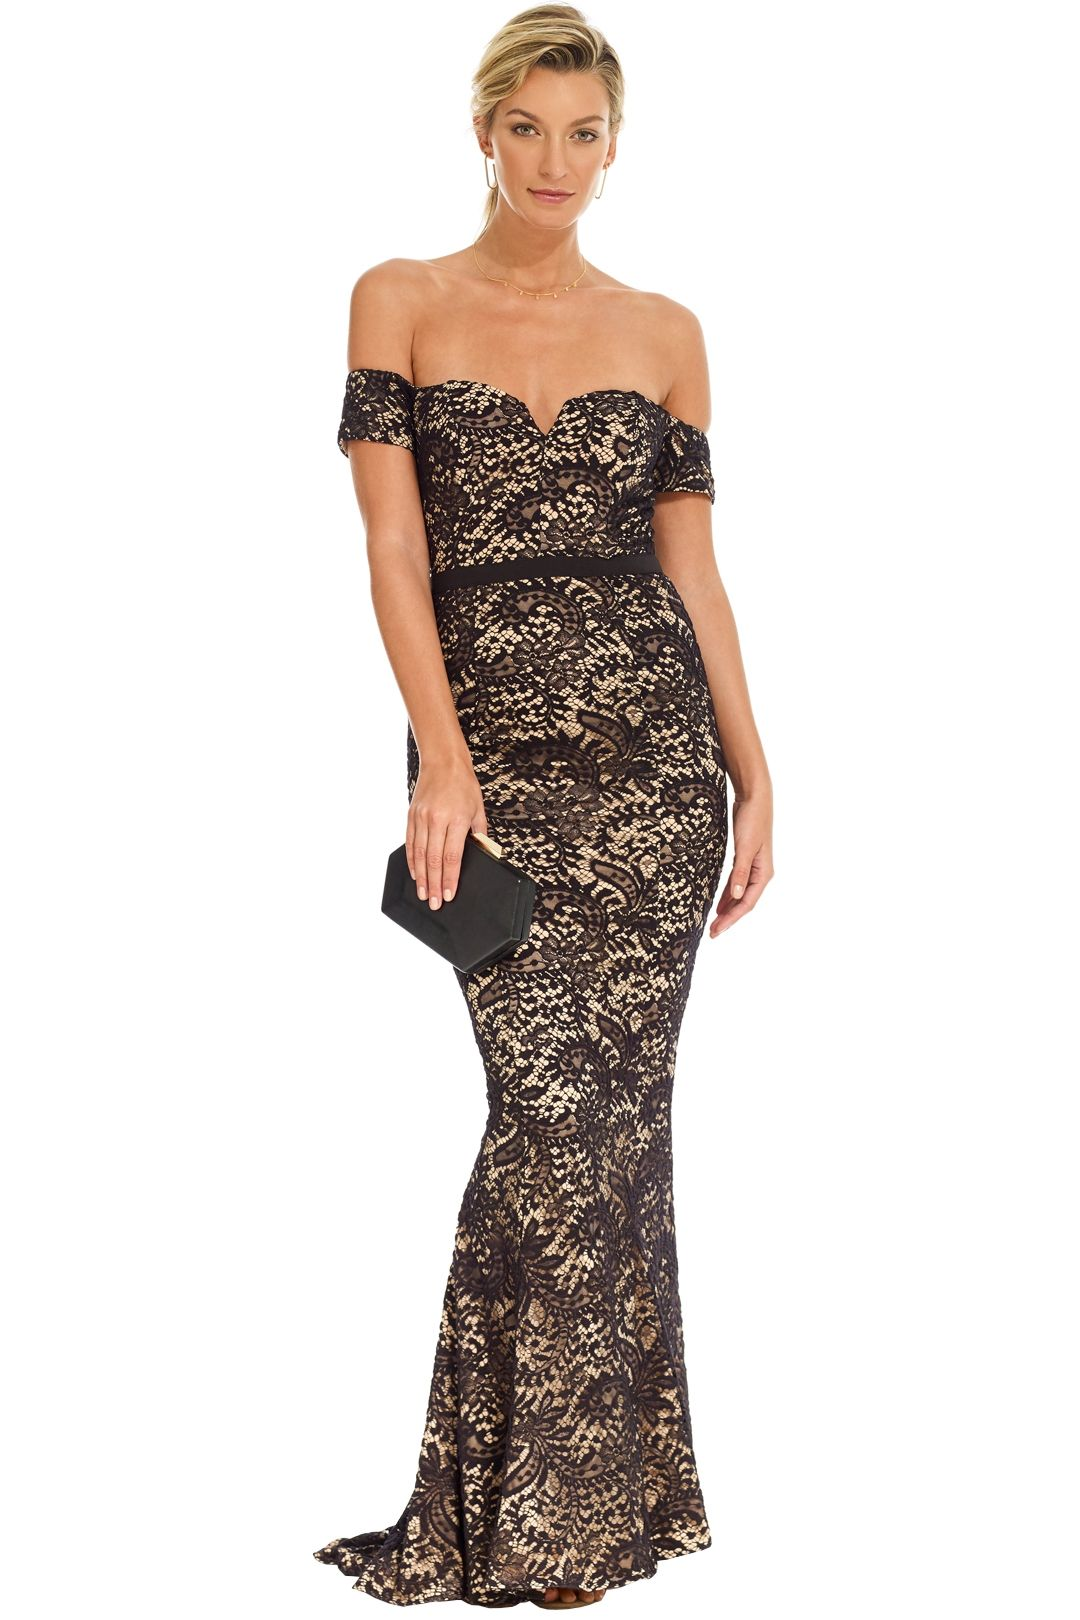 Elle Zeitoune - Off Shoulder Gown - Black Nude - Front